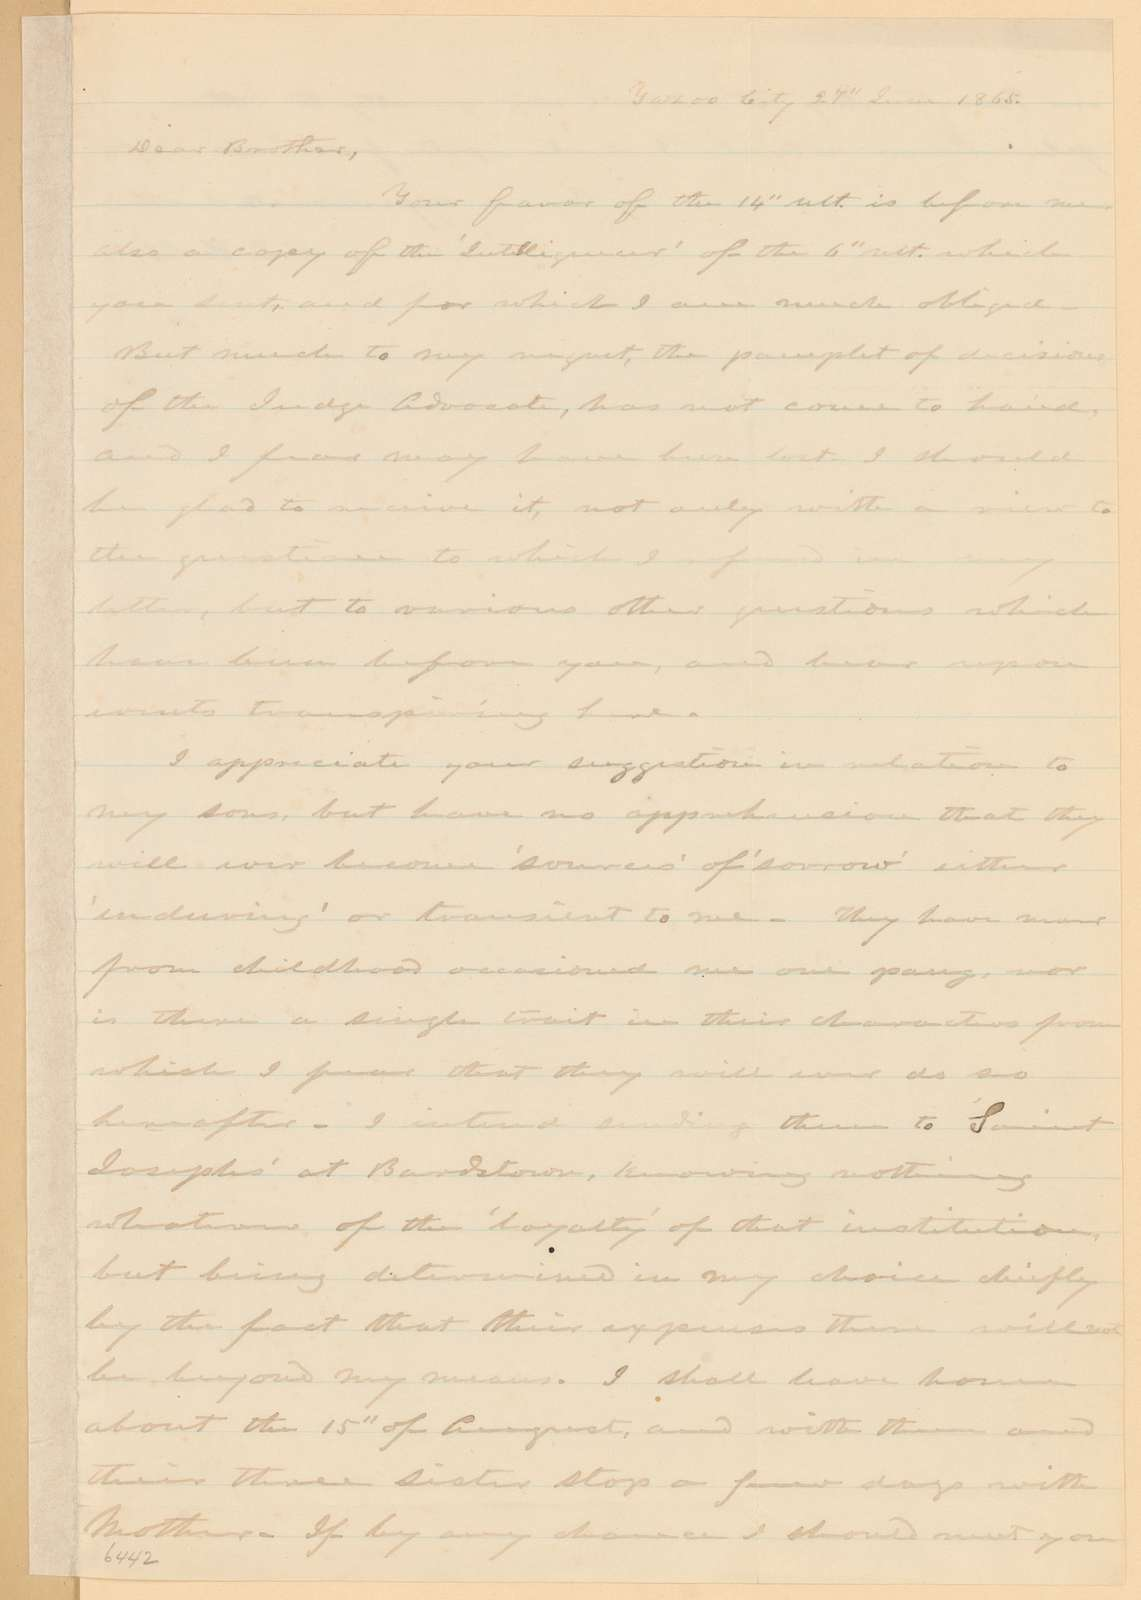 Joseph Holt Papers: General Correspondence and Related Material, 1817-1894; 1865, May 23-July 8